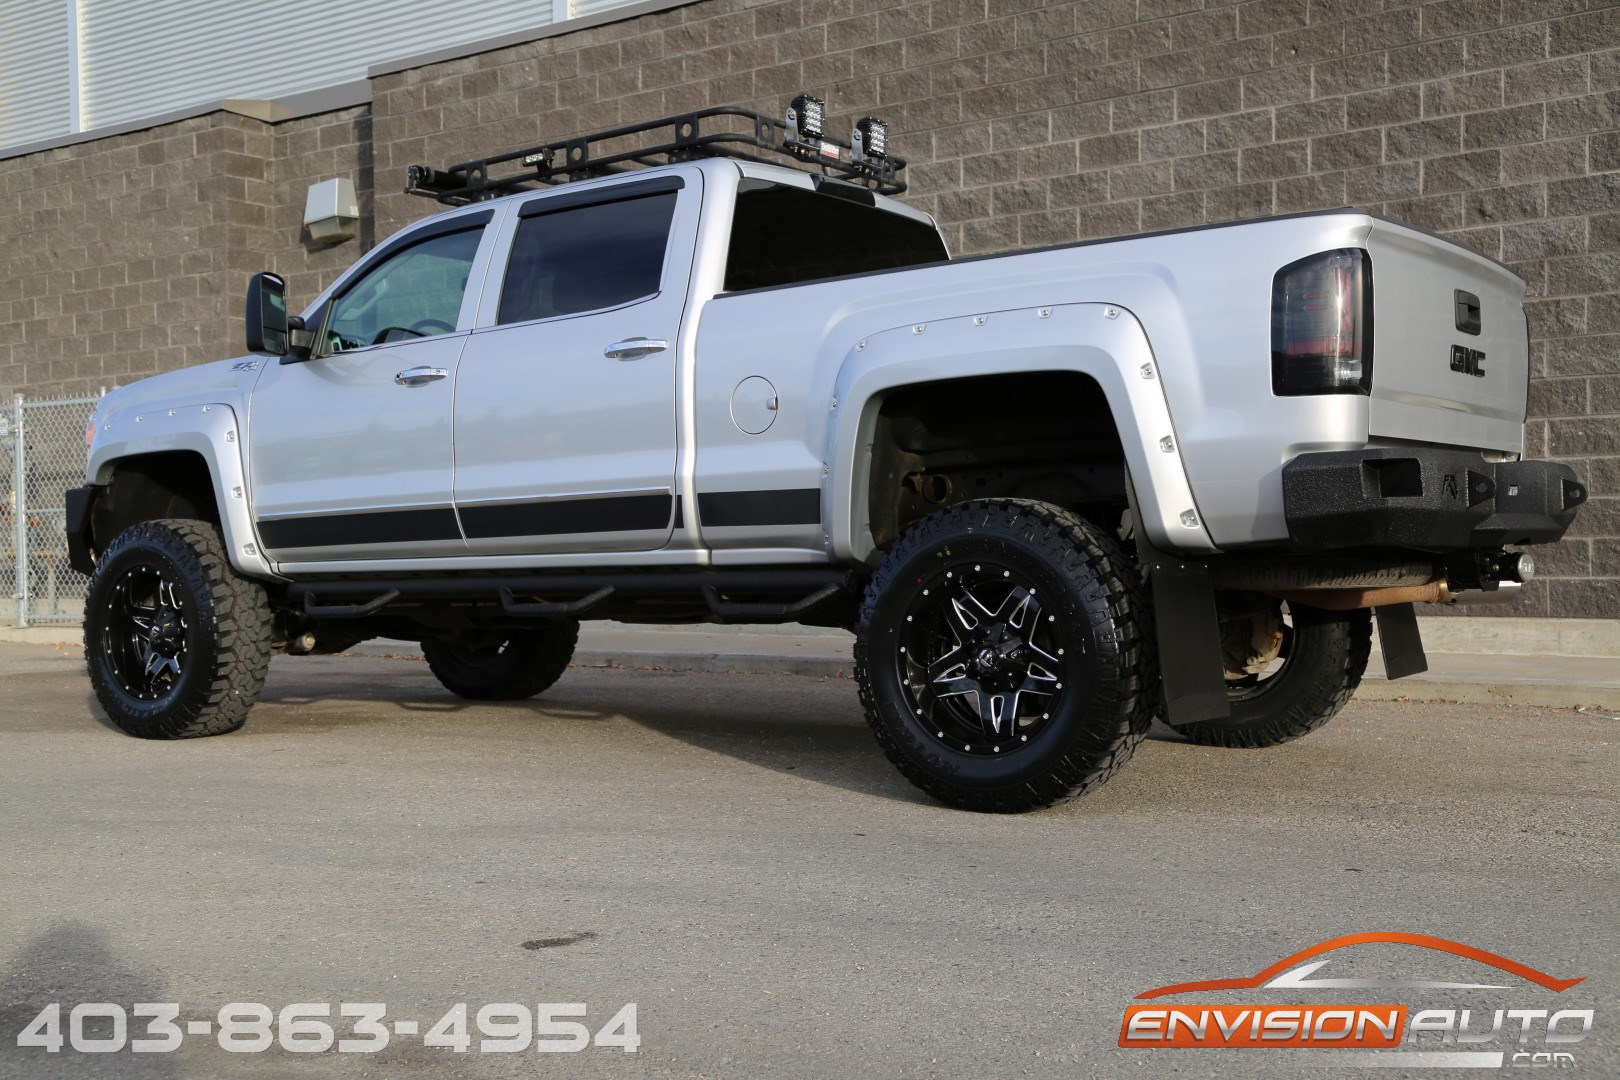 2015 gmc sierra 2500hd slt crew z71 custom show truck envision auto. Black Bedroom Furniture Sets. Home Design Ideas